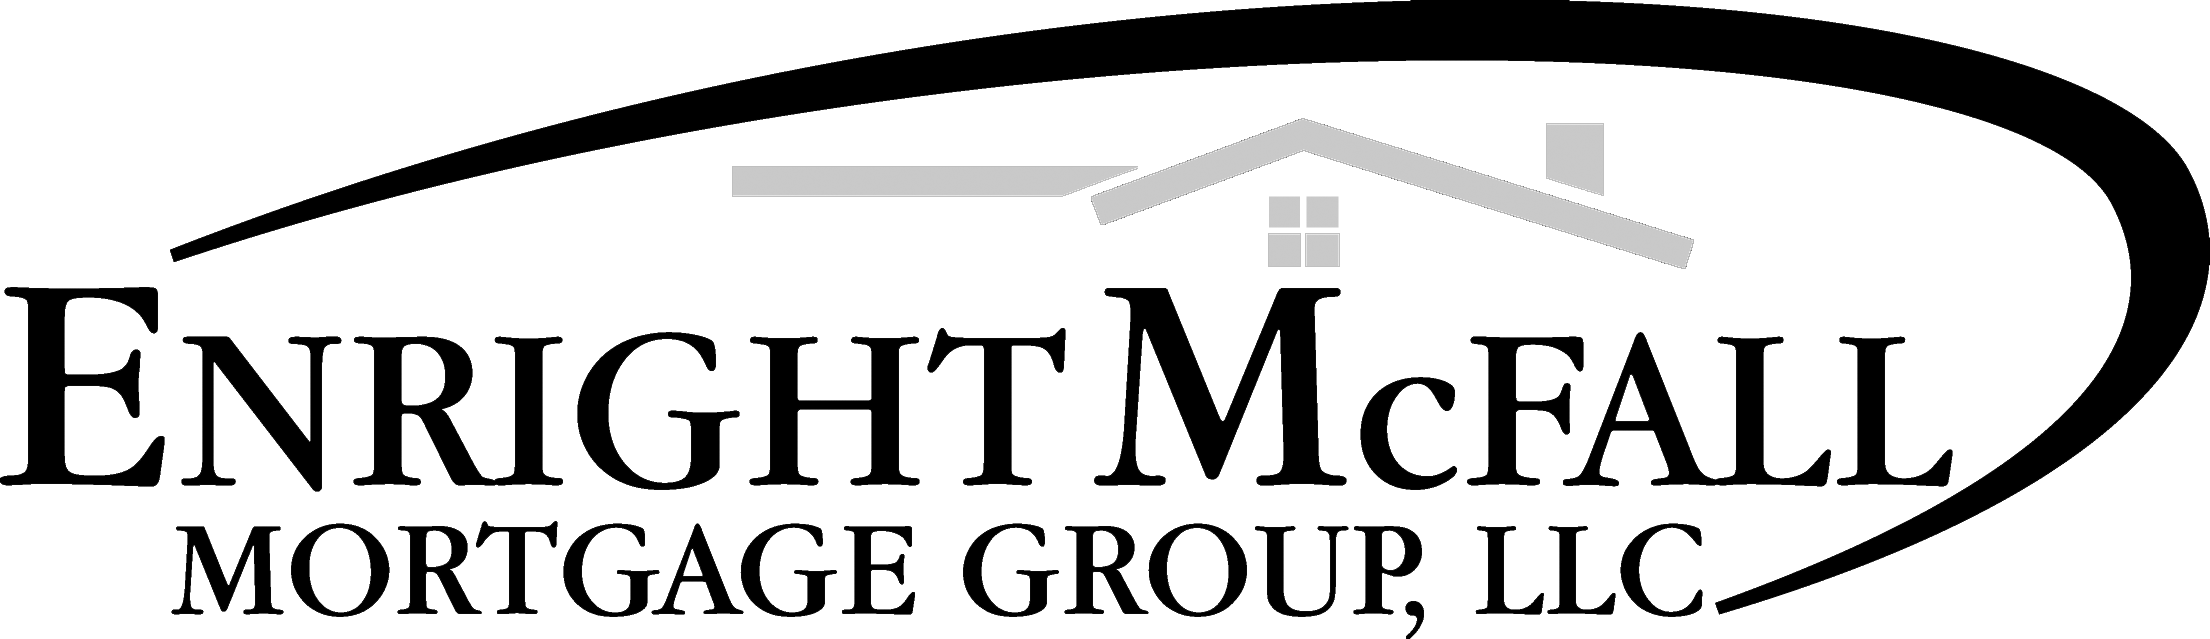 Enright McFall Mortgage Group, LLC